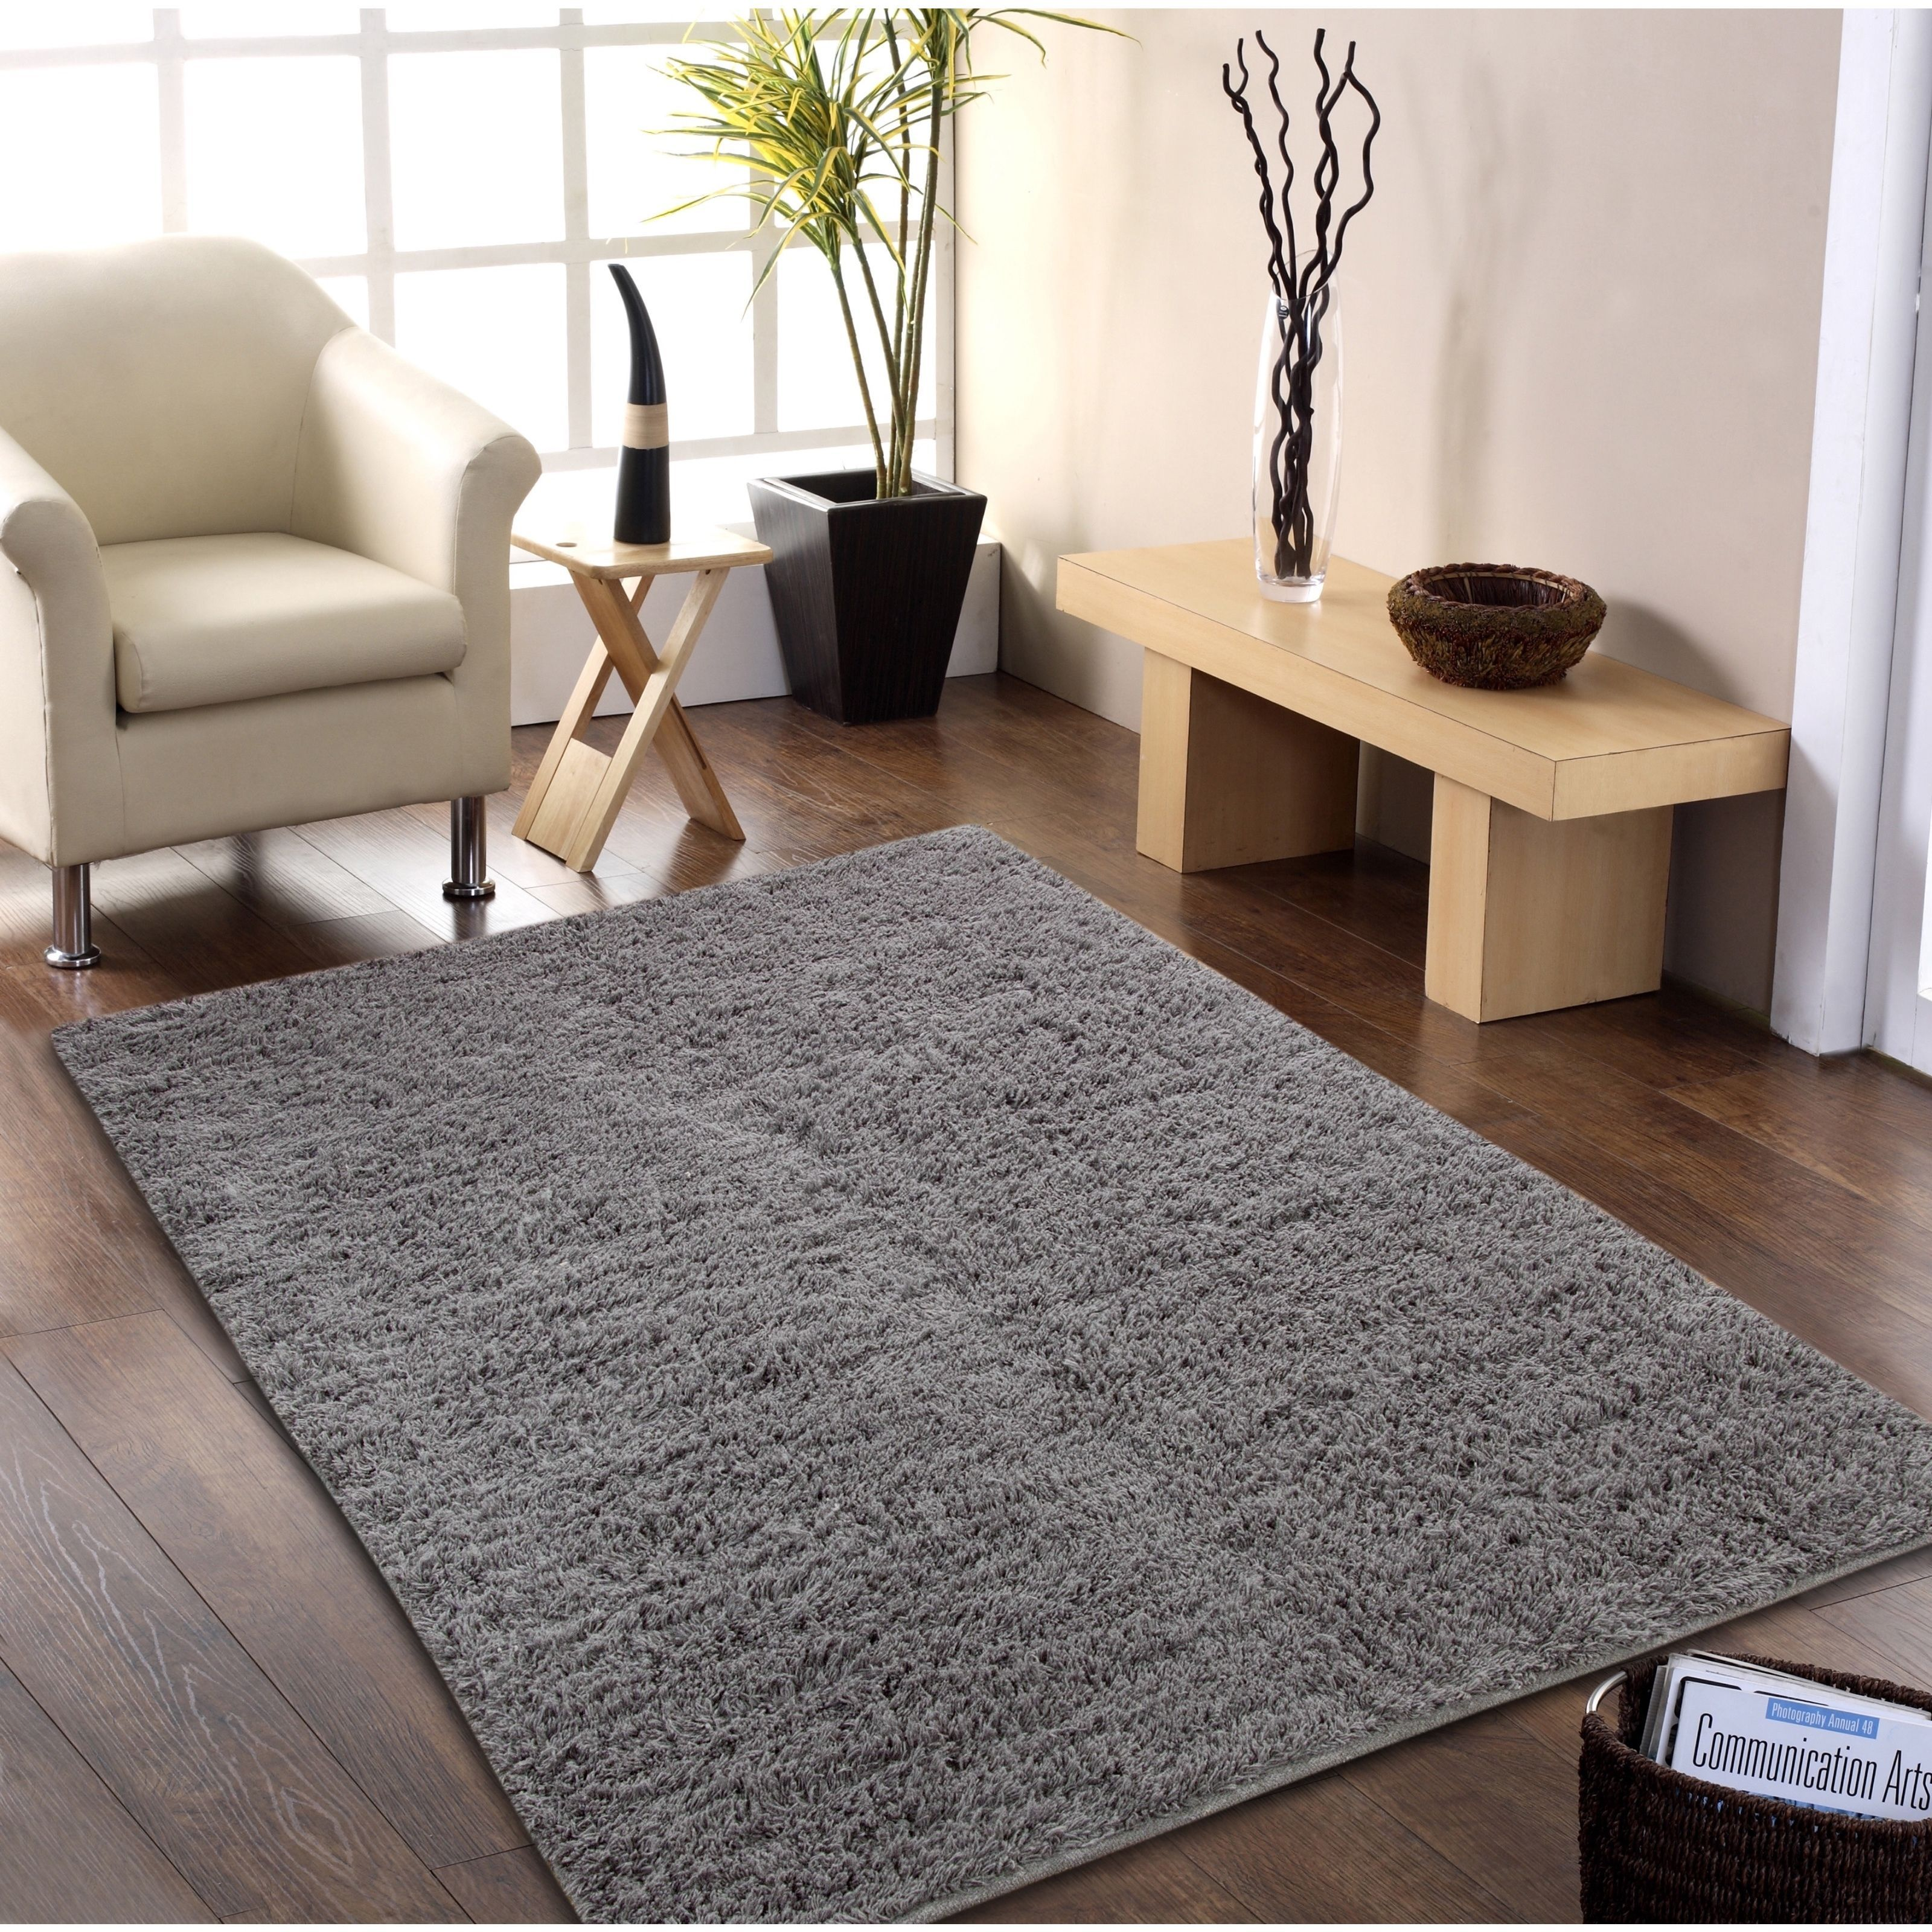 Affinity home collection handwoven flokati wool shag rug products